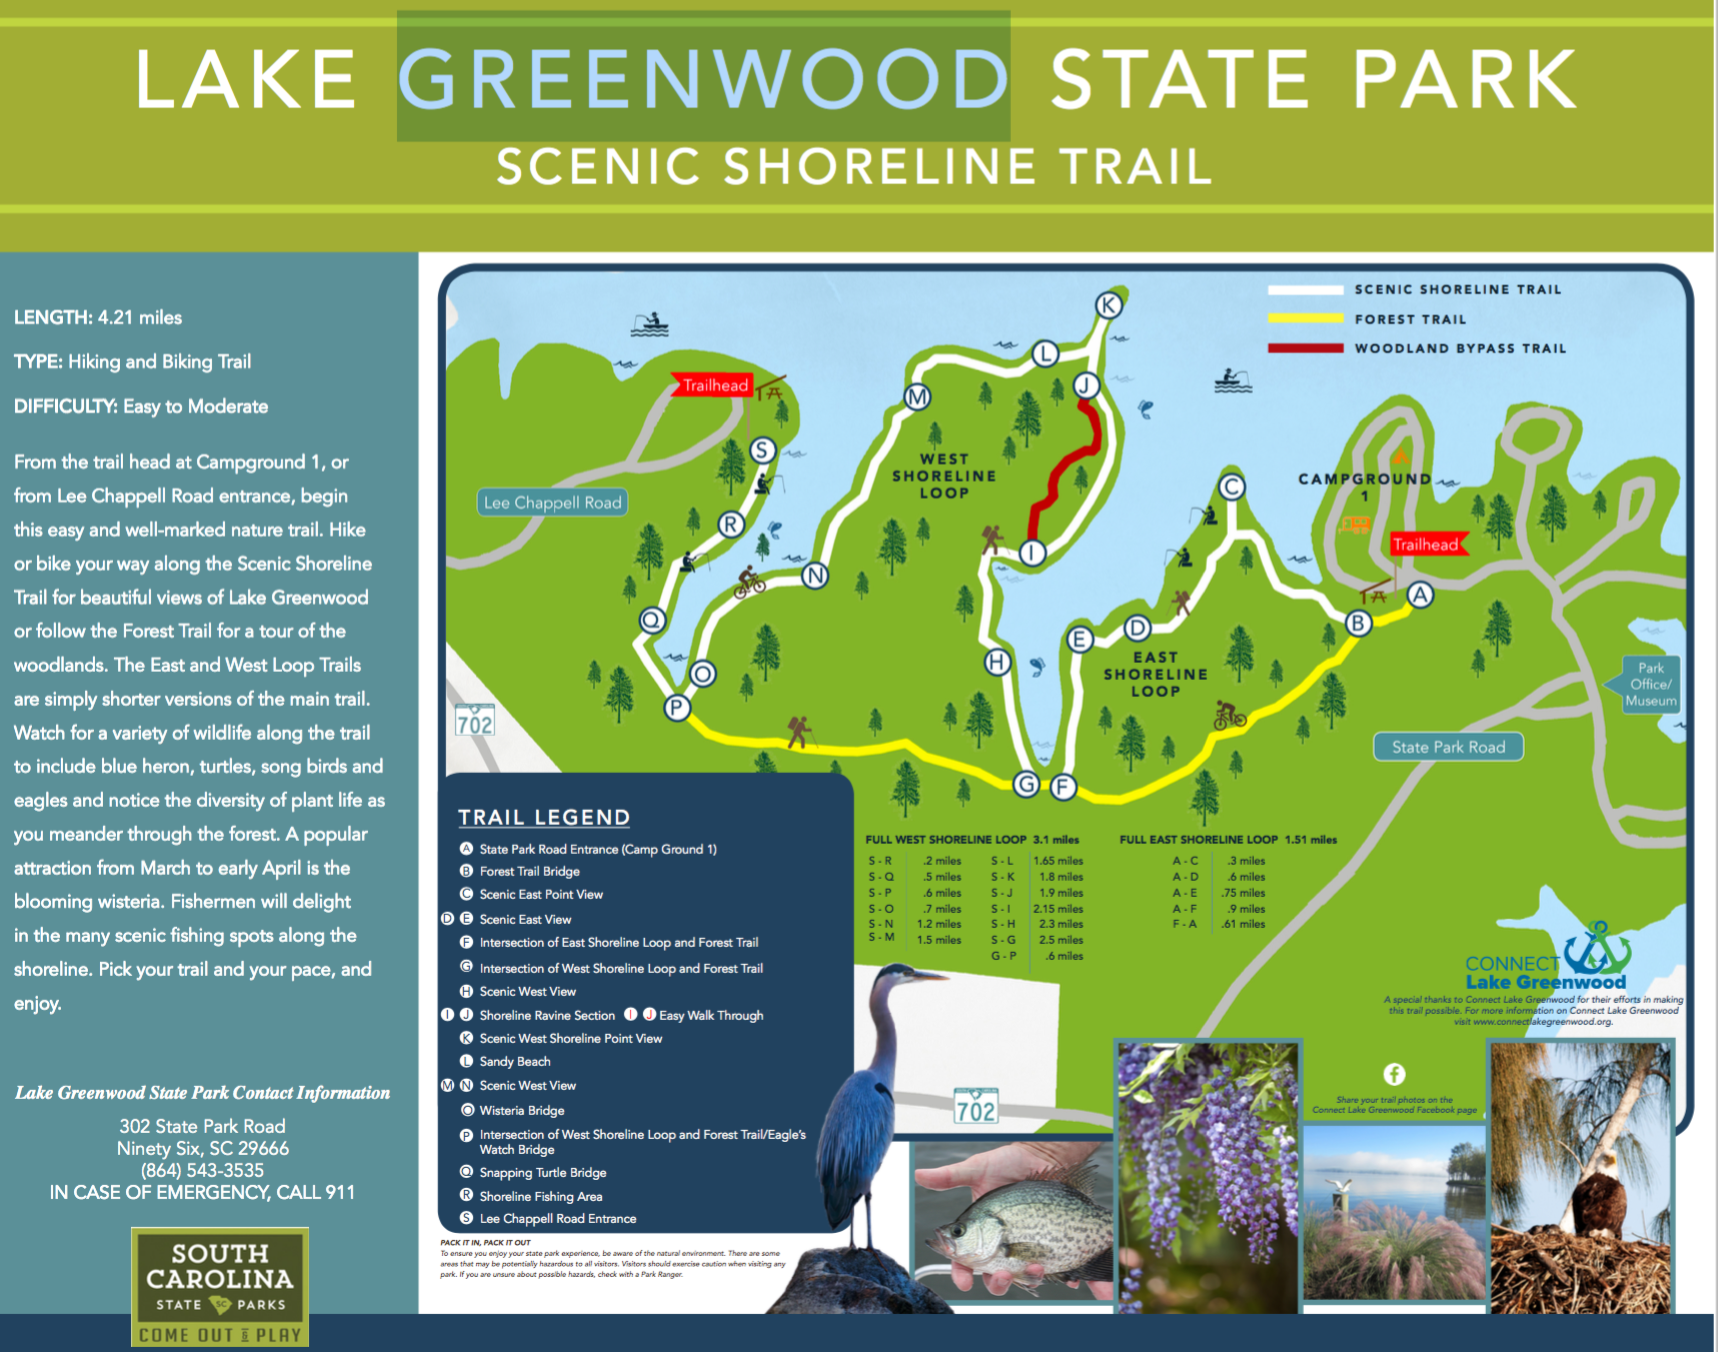 New Lake Trail - Connect Lake Greenwood Sc State Parks Map on connetquot state park trail map, platte river state park map, wa state parks map, maryland parks map, poinsett state park map, south park map, ms state parks map, wi state parks map, new orleans parks map, columbia state park map, jubilee state park trail map, iowa state parks map, hillsborough river state park map, texas state parks map, richmond parks map, jacksonville parks map, oregon state parks map, myakka river state park map, florida parks map, ky state parks map,